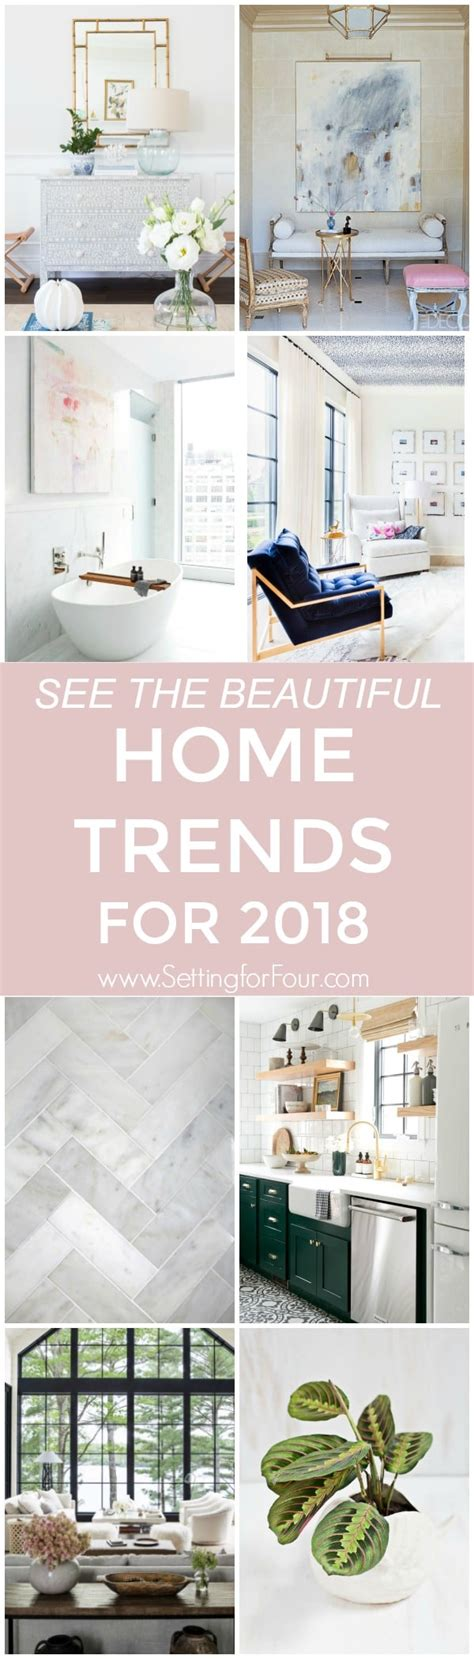 home design trends for 2018 home trends for 2018 in design and decor setting for four